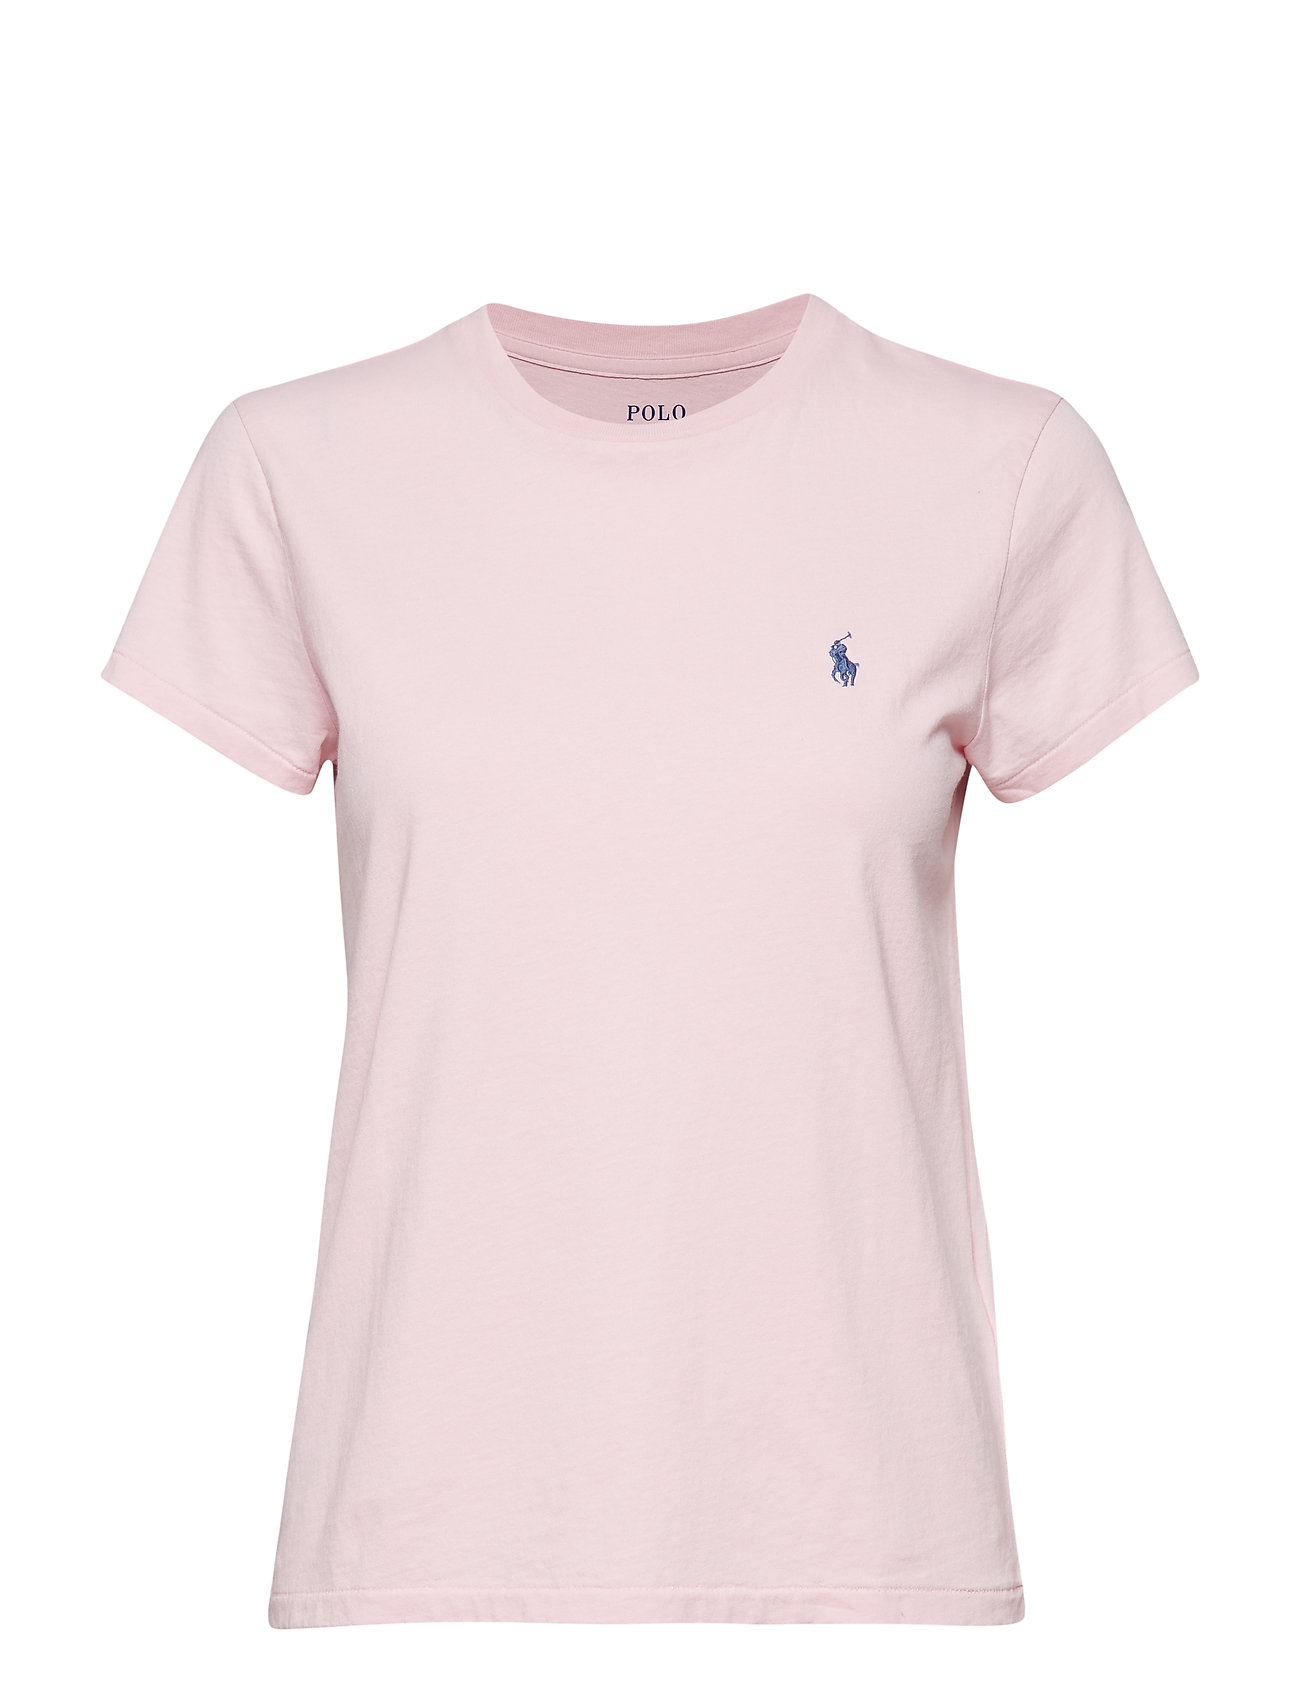 Polo Ralph Lauren Cotton Crewneck T-Shirt